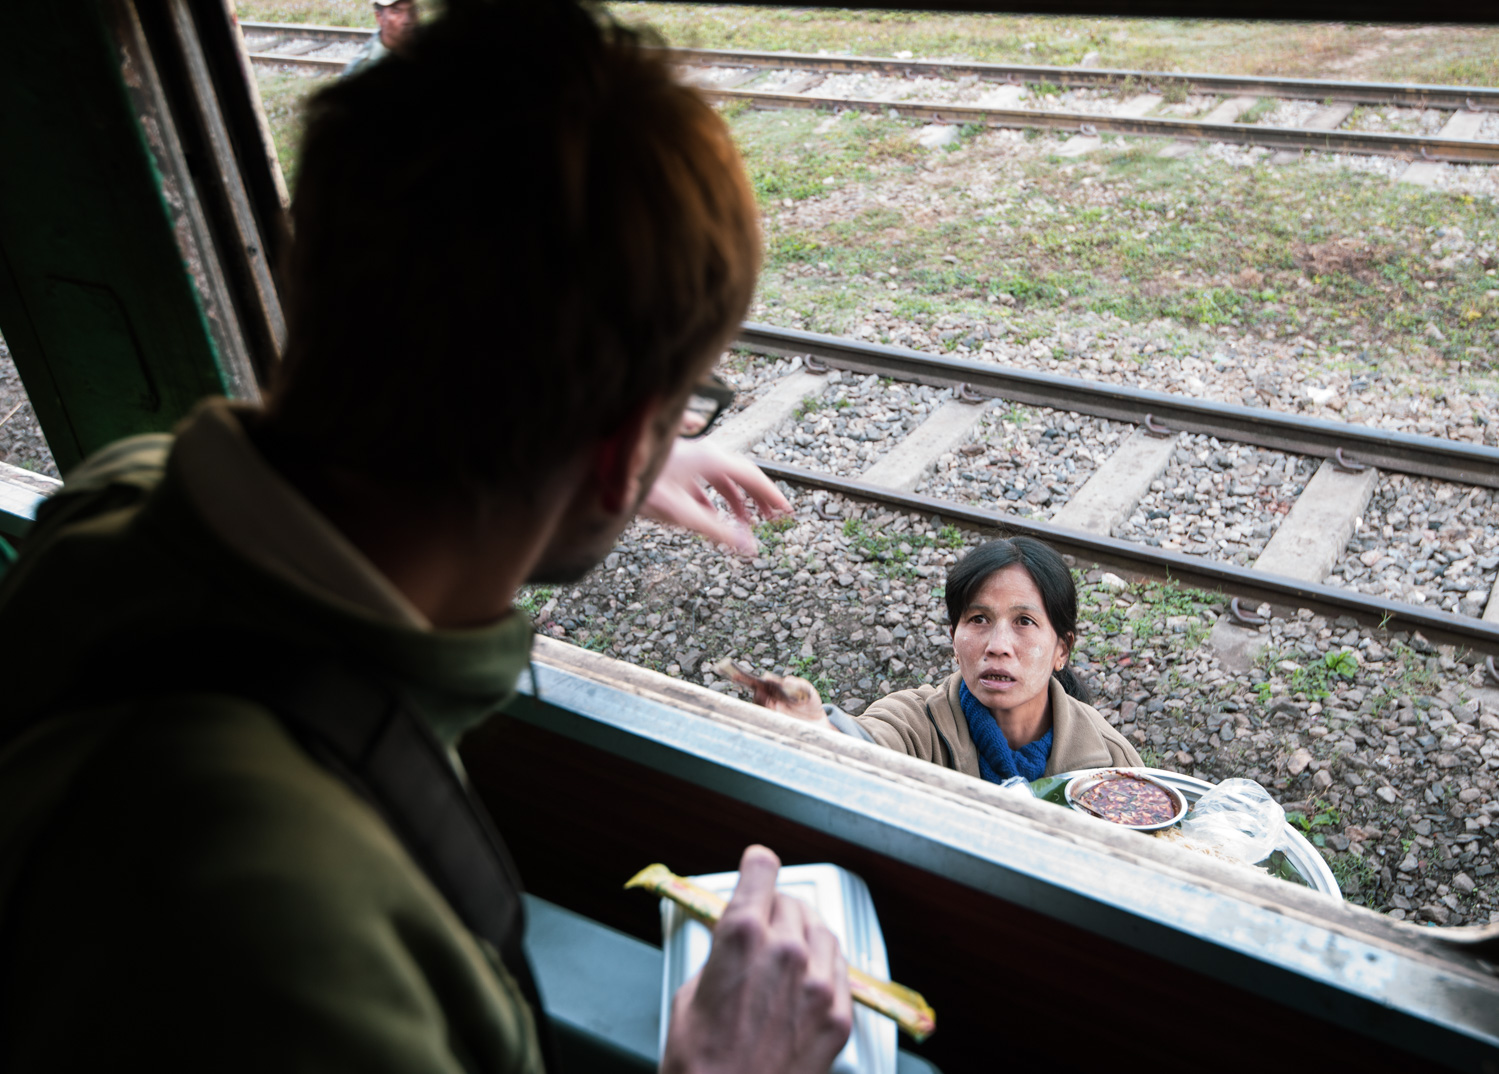 Buying noodles from a roaming vendor from the Mandalay-Lashio (Gokteik) train window.